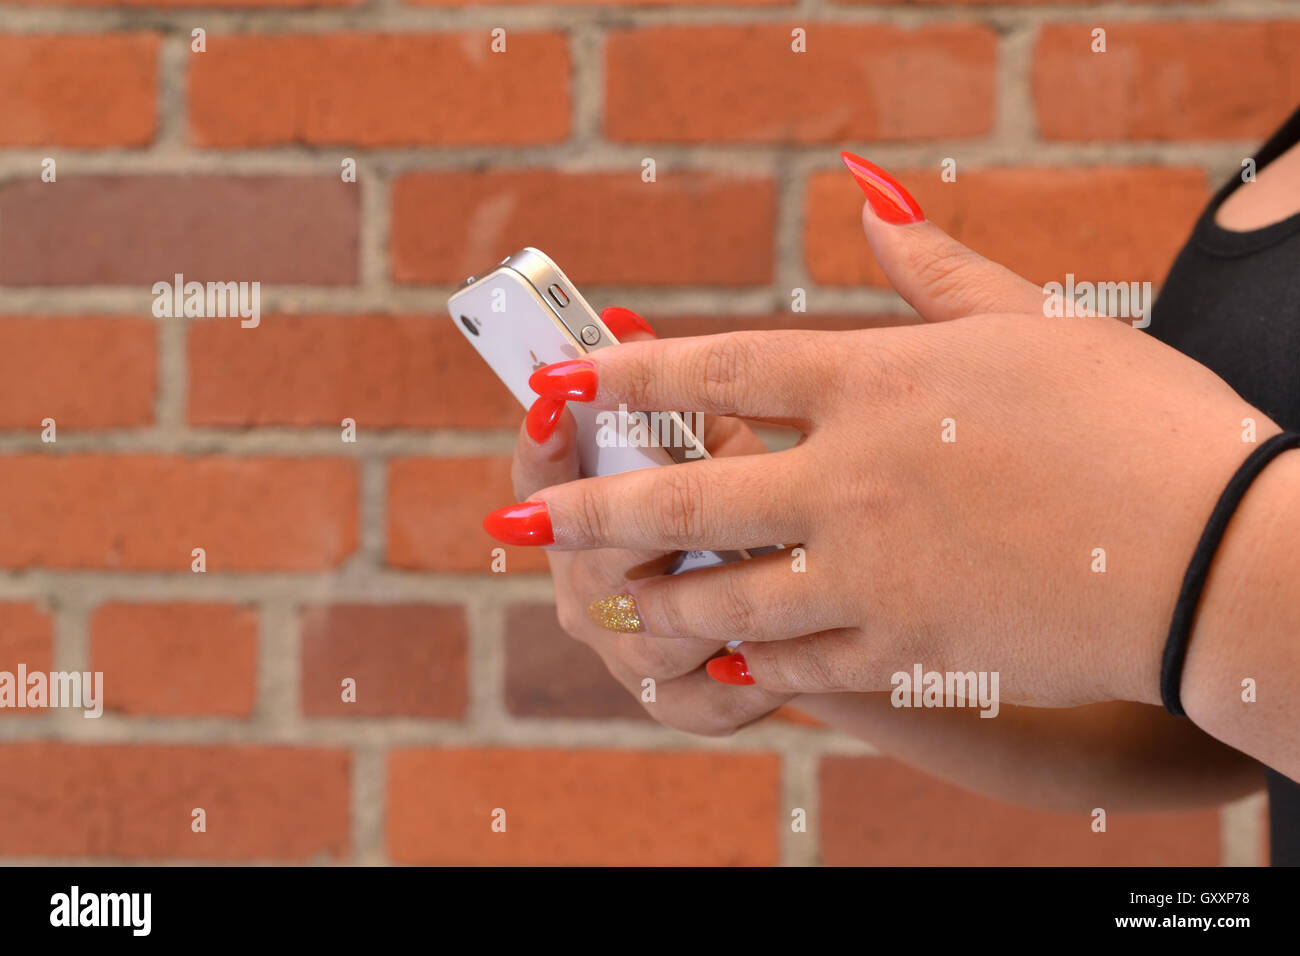 Hands of Hispanic woman checking an iphone, displaying long red ...